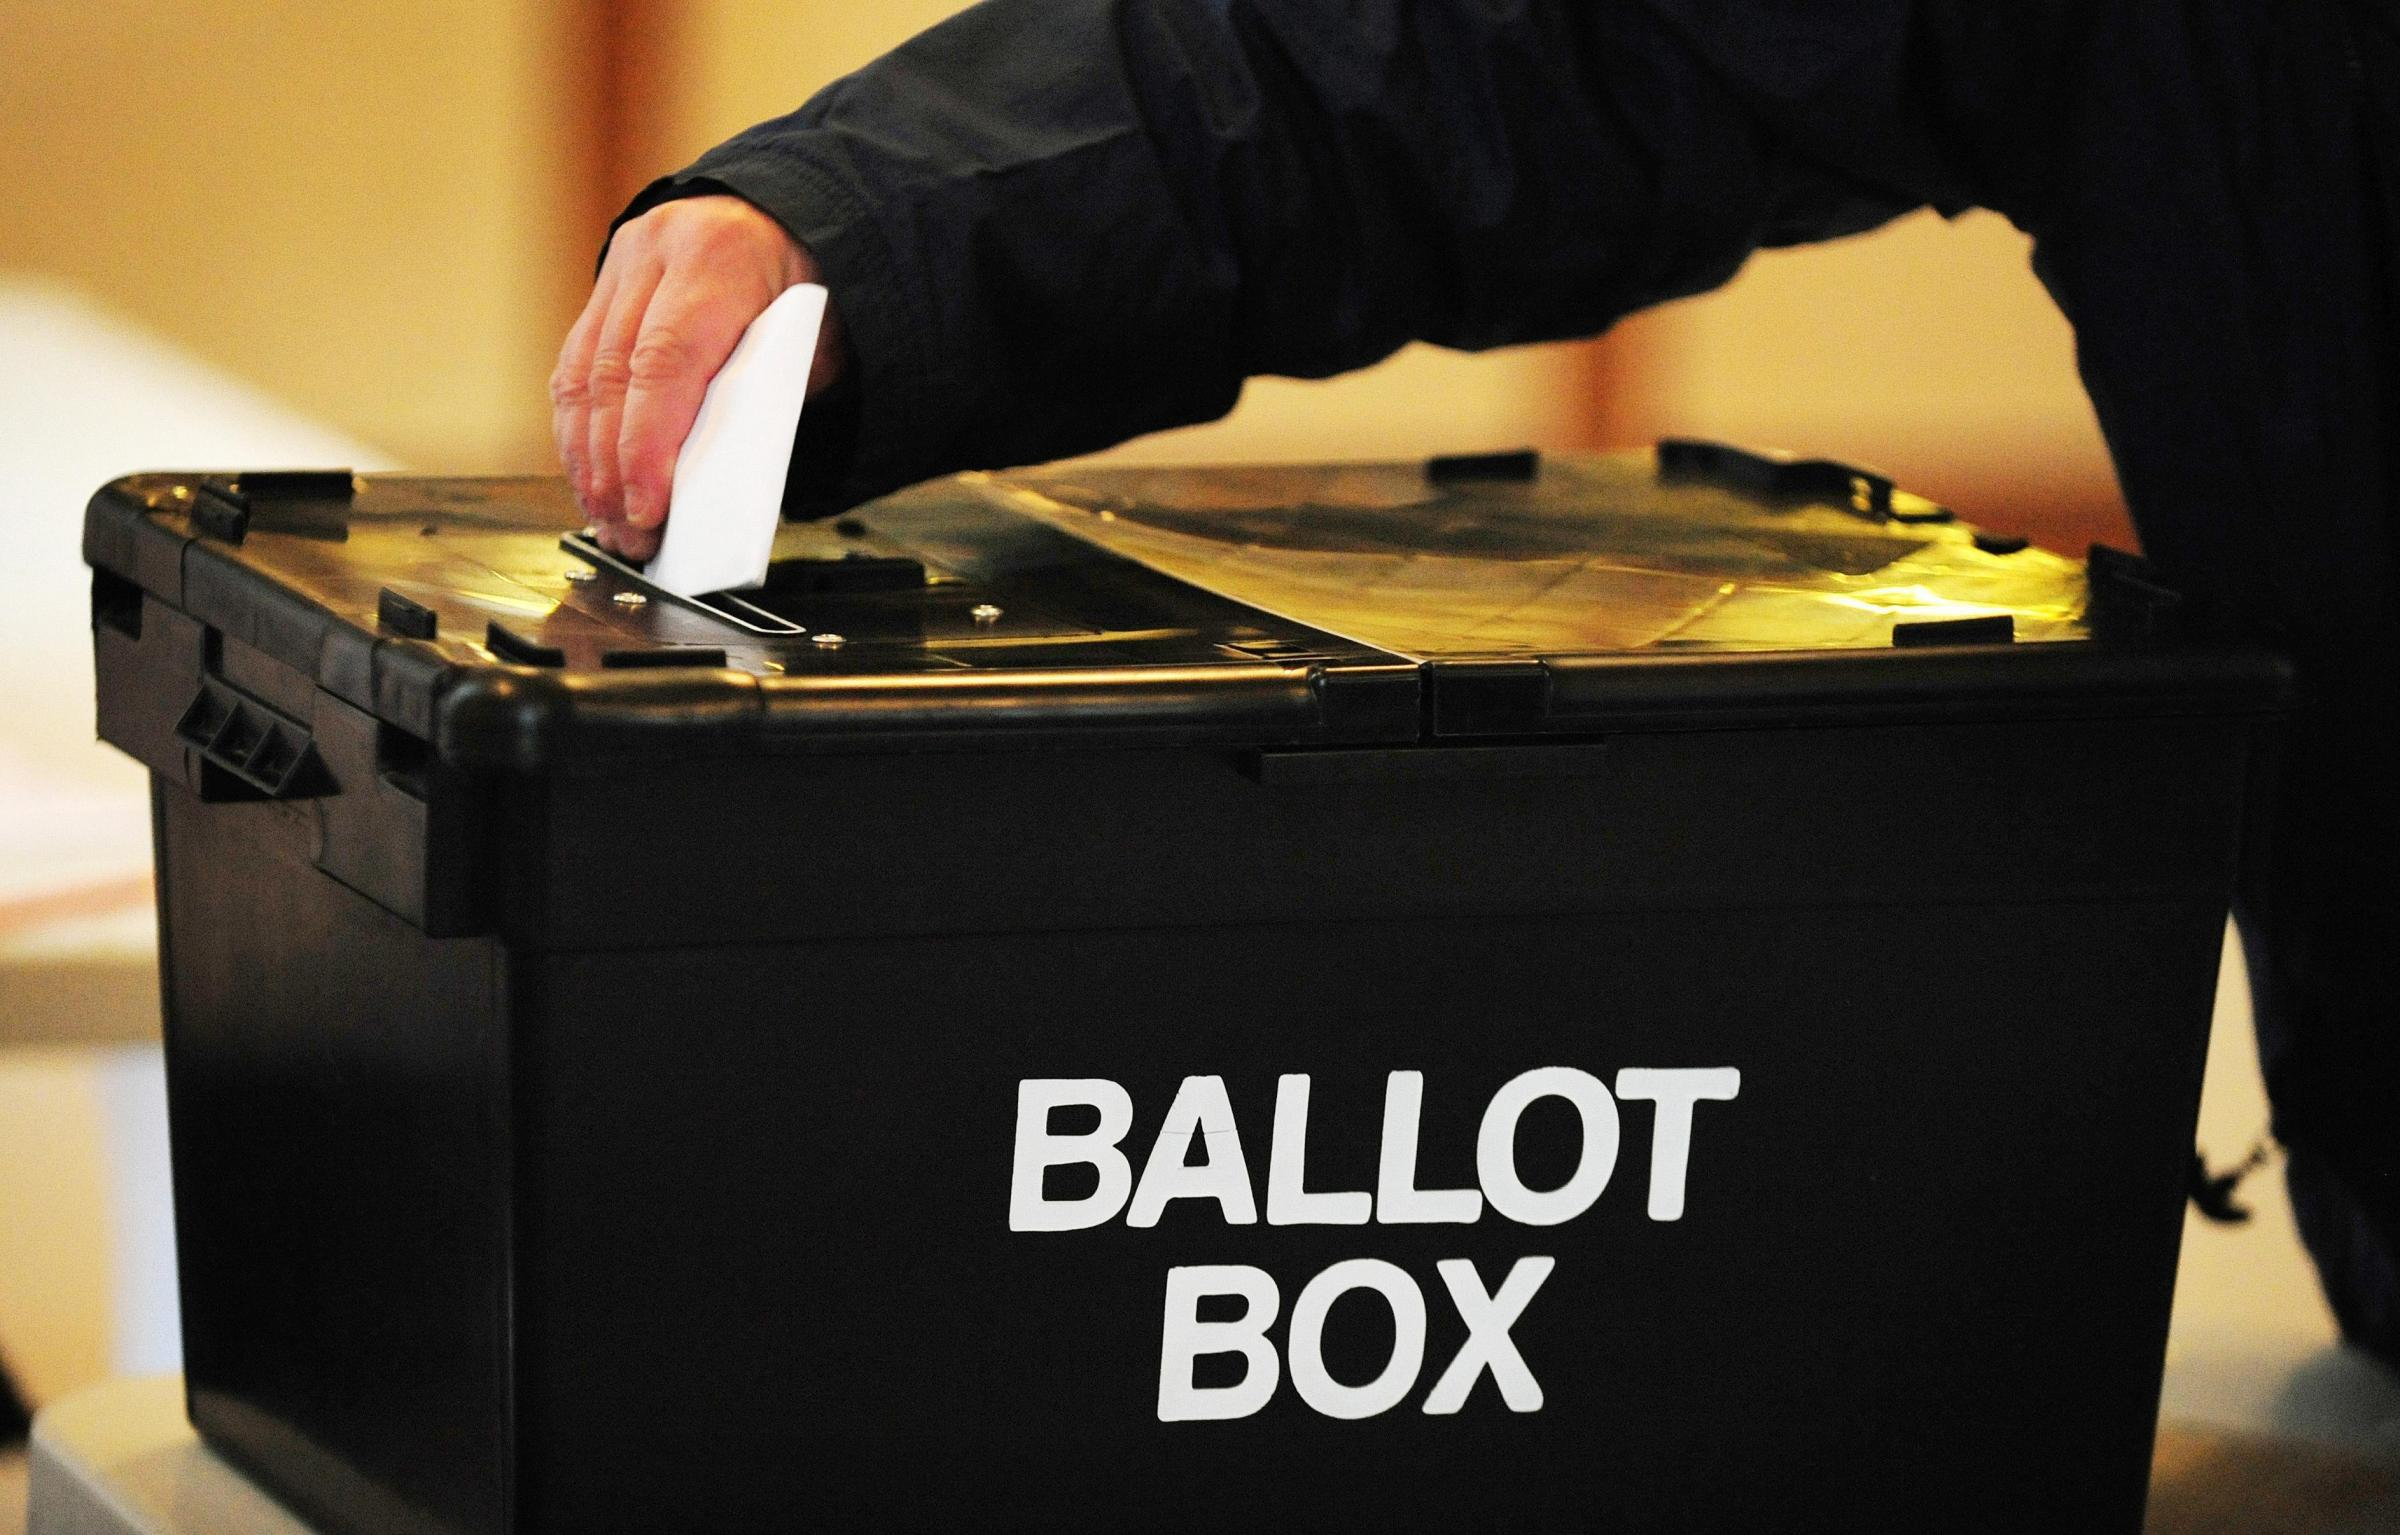 Voters 'should show ID at polling stations'